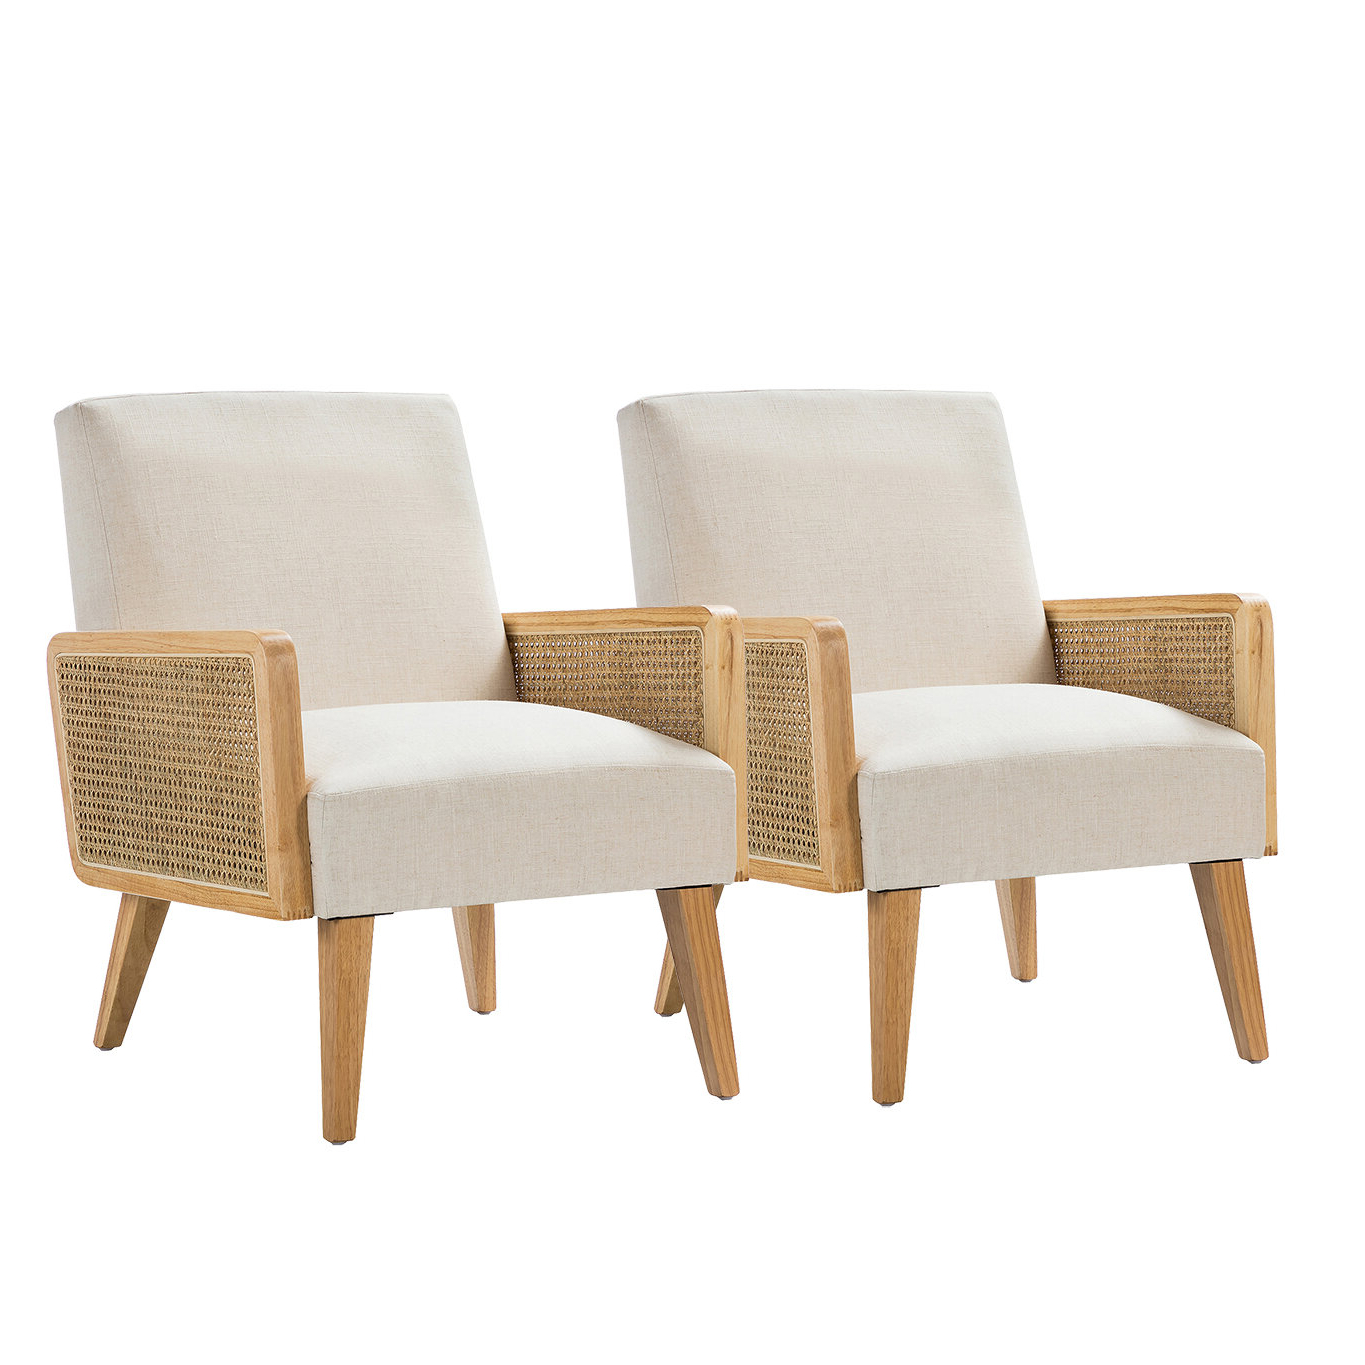 Beachwood Arm Chairs Inside Most Up To Date Allmodern Aleksandra Armchair & Reviews (View 12 of 20)